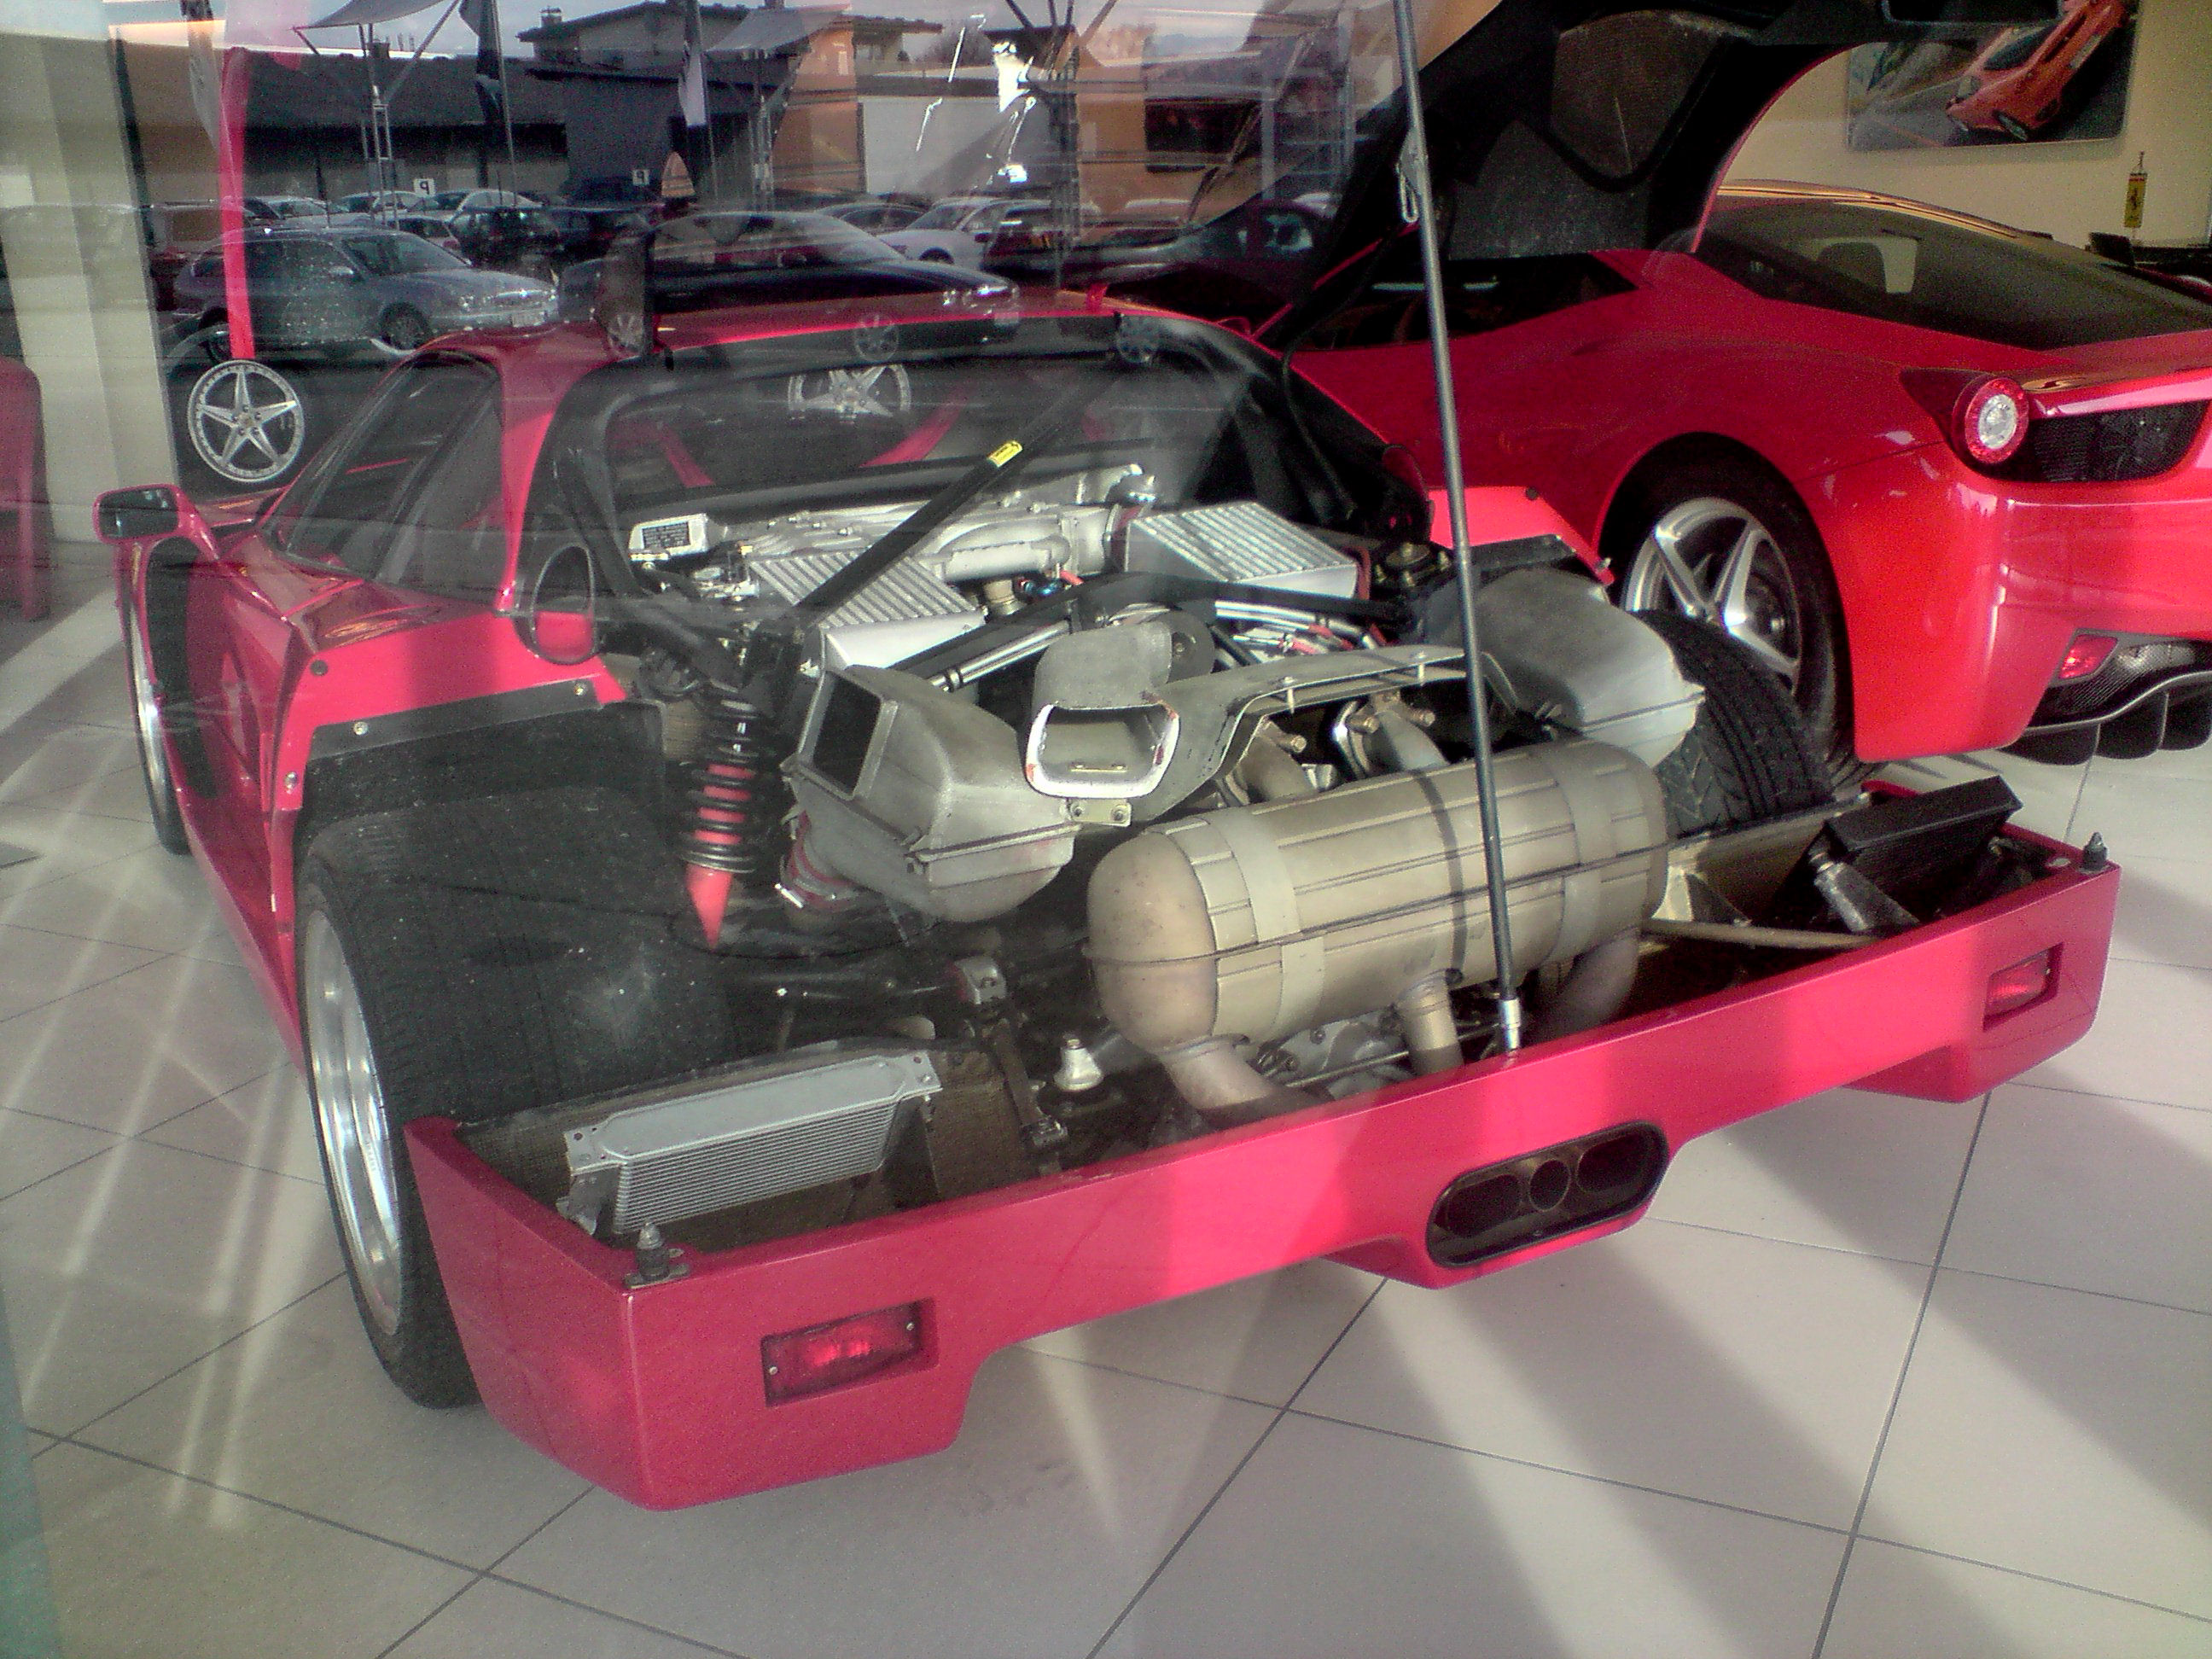 File:F40 Ferrari engine.JPG - Wikimedia Commons